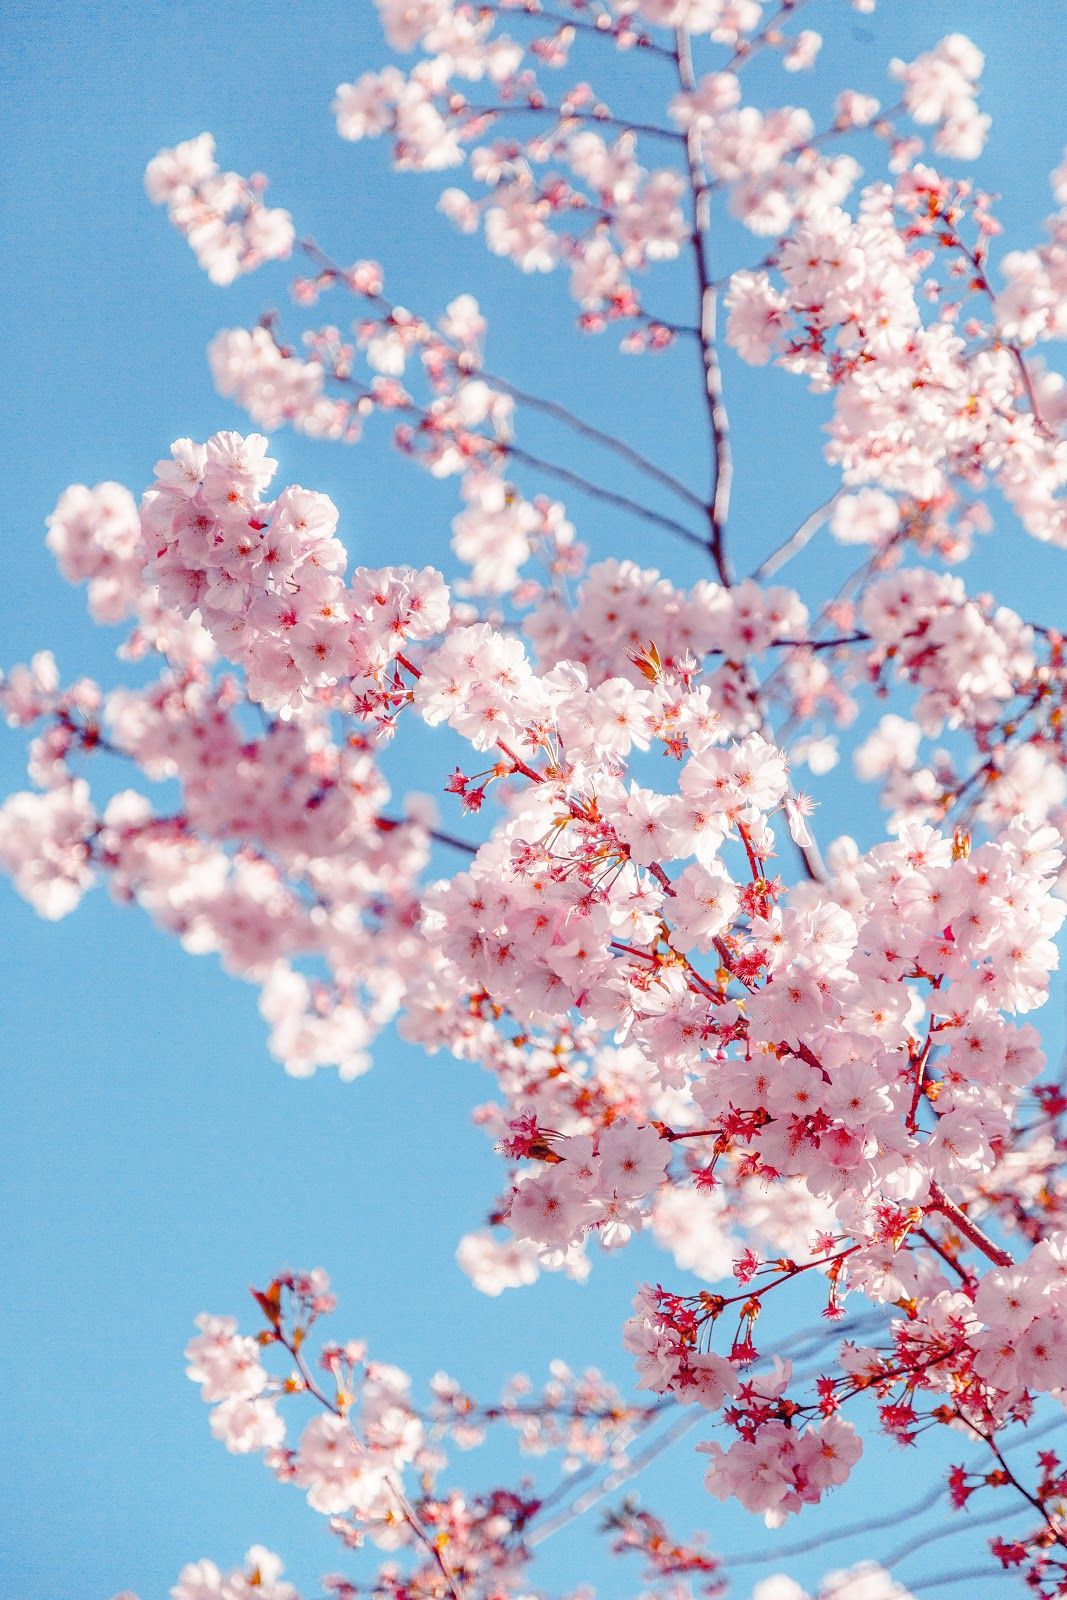 Sakura Tree Cherry Blossom Wallpaper Sakura Tree Cherry Blossom Japan